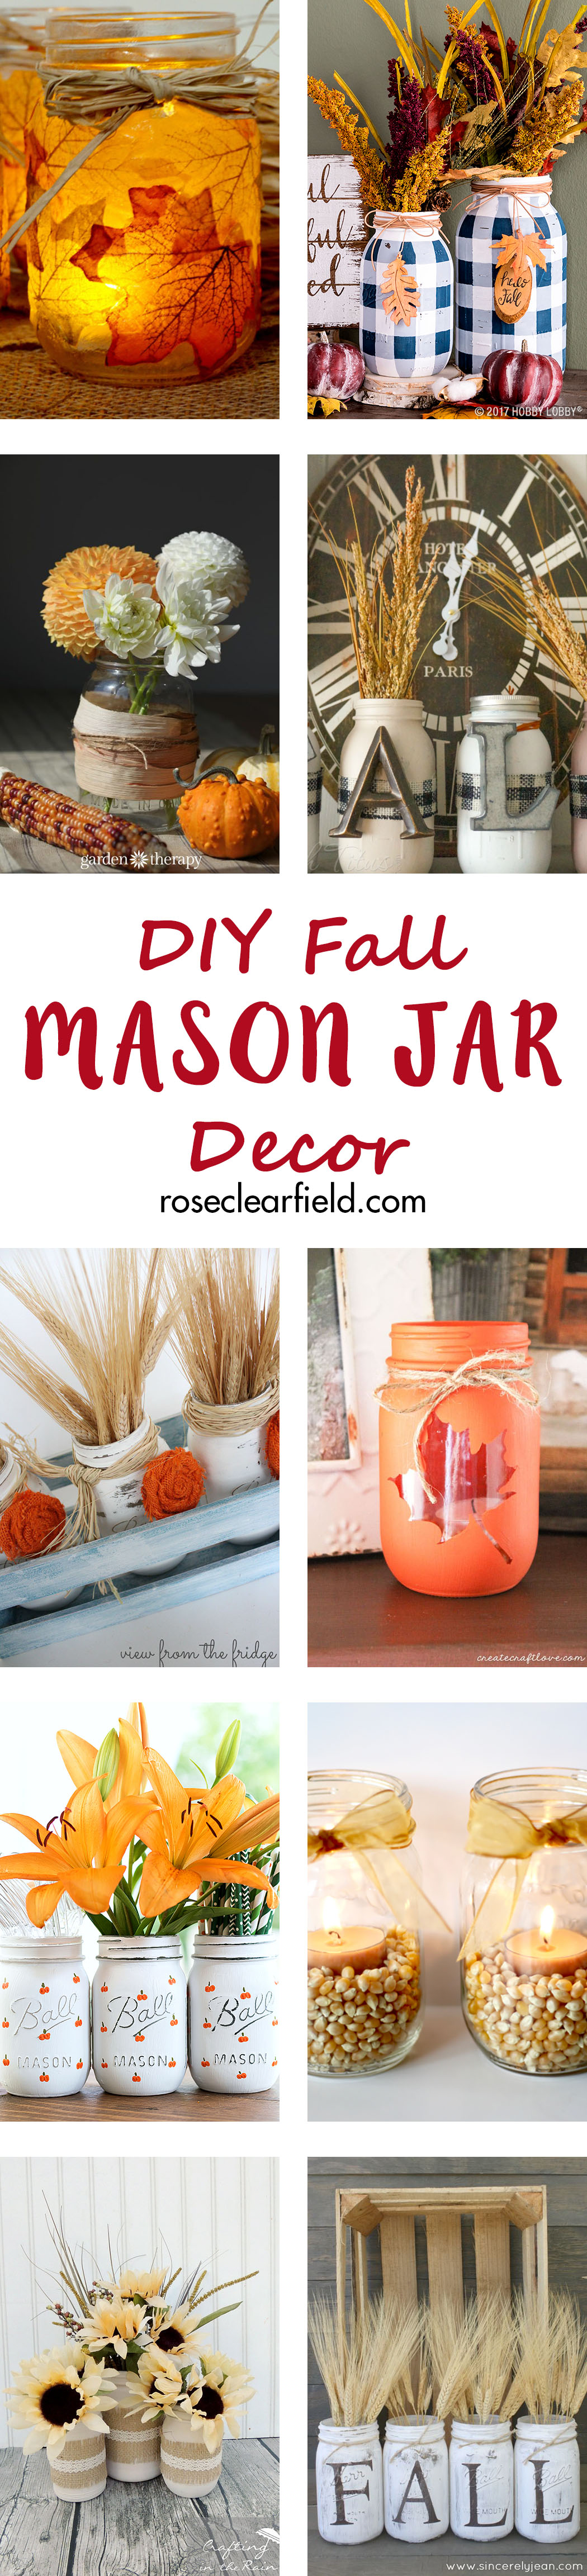 DIY Fall Mason Jar Decor | http://www.roseclearfield.com